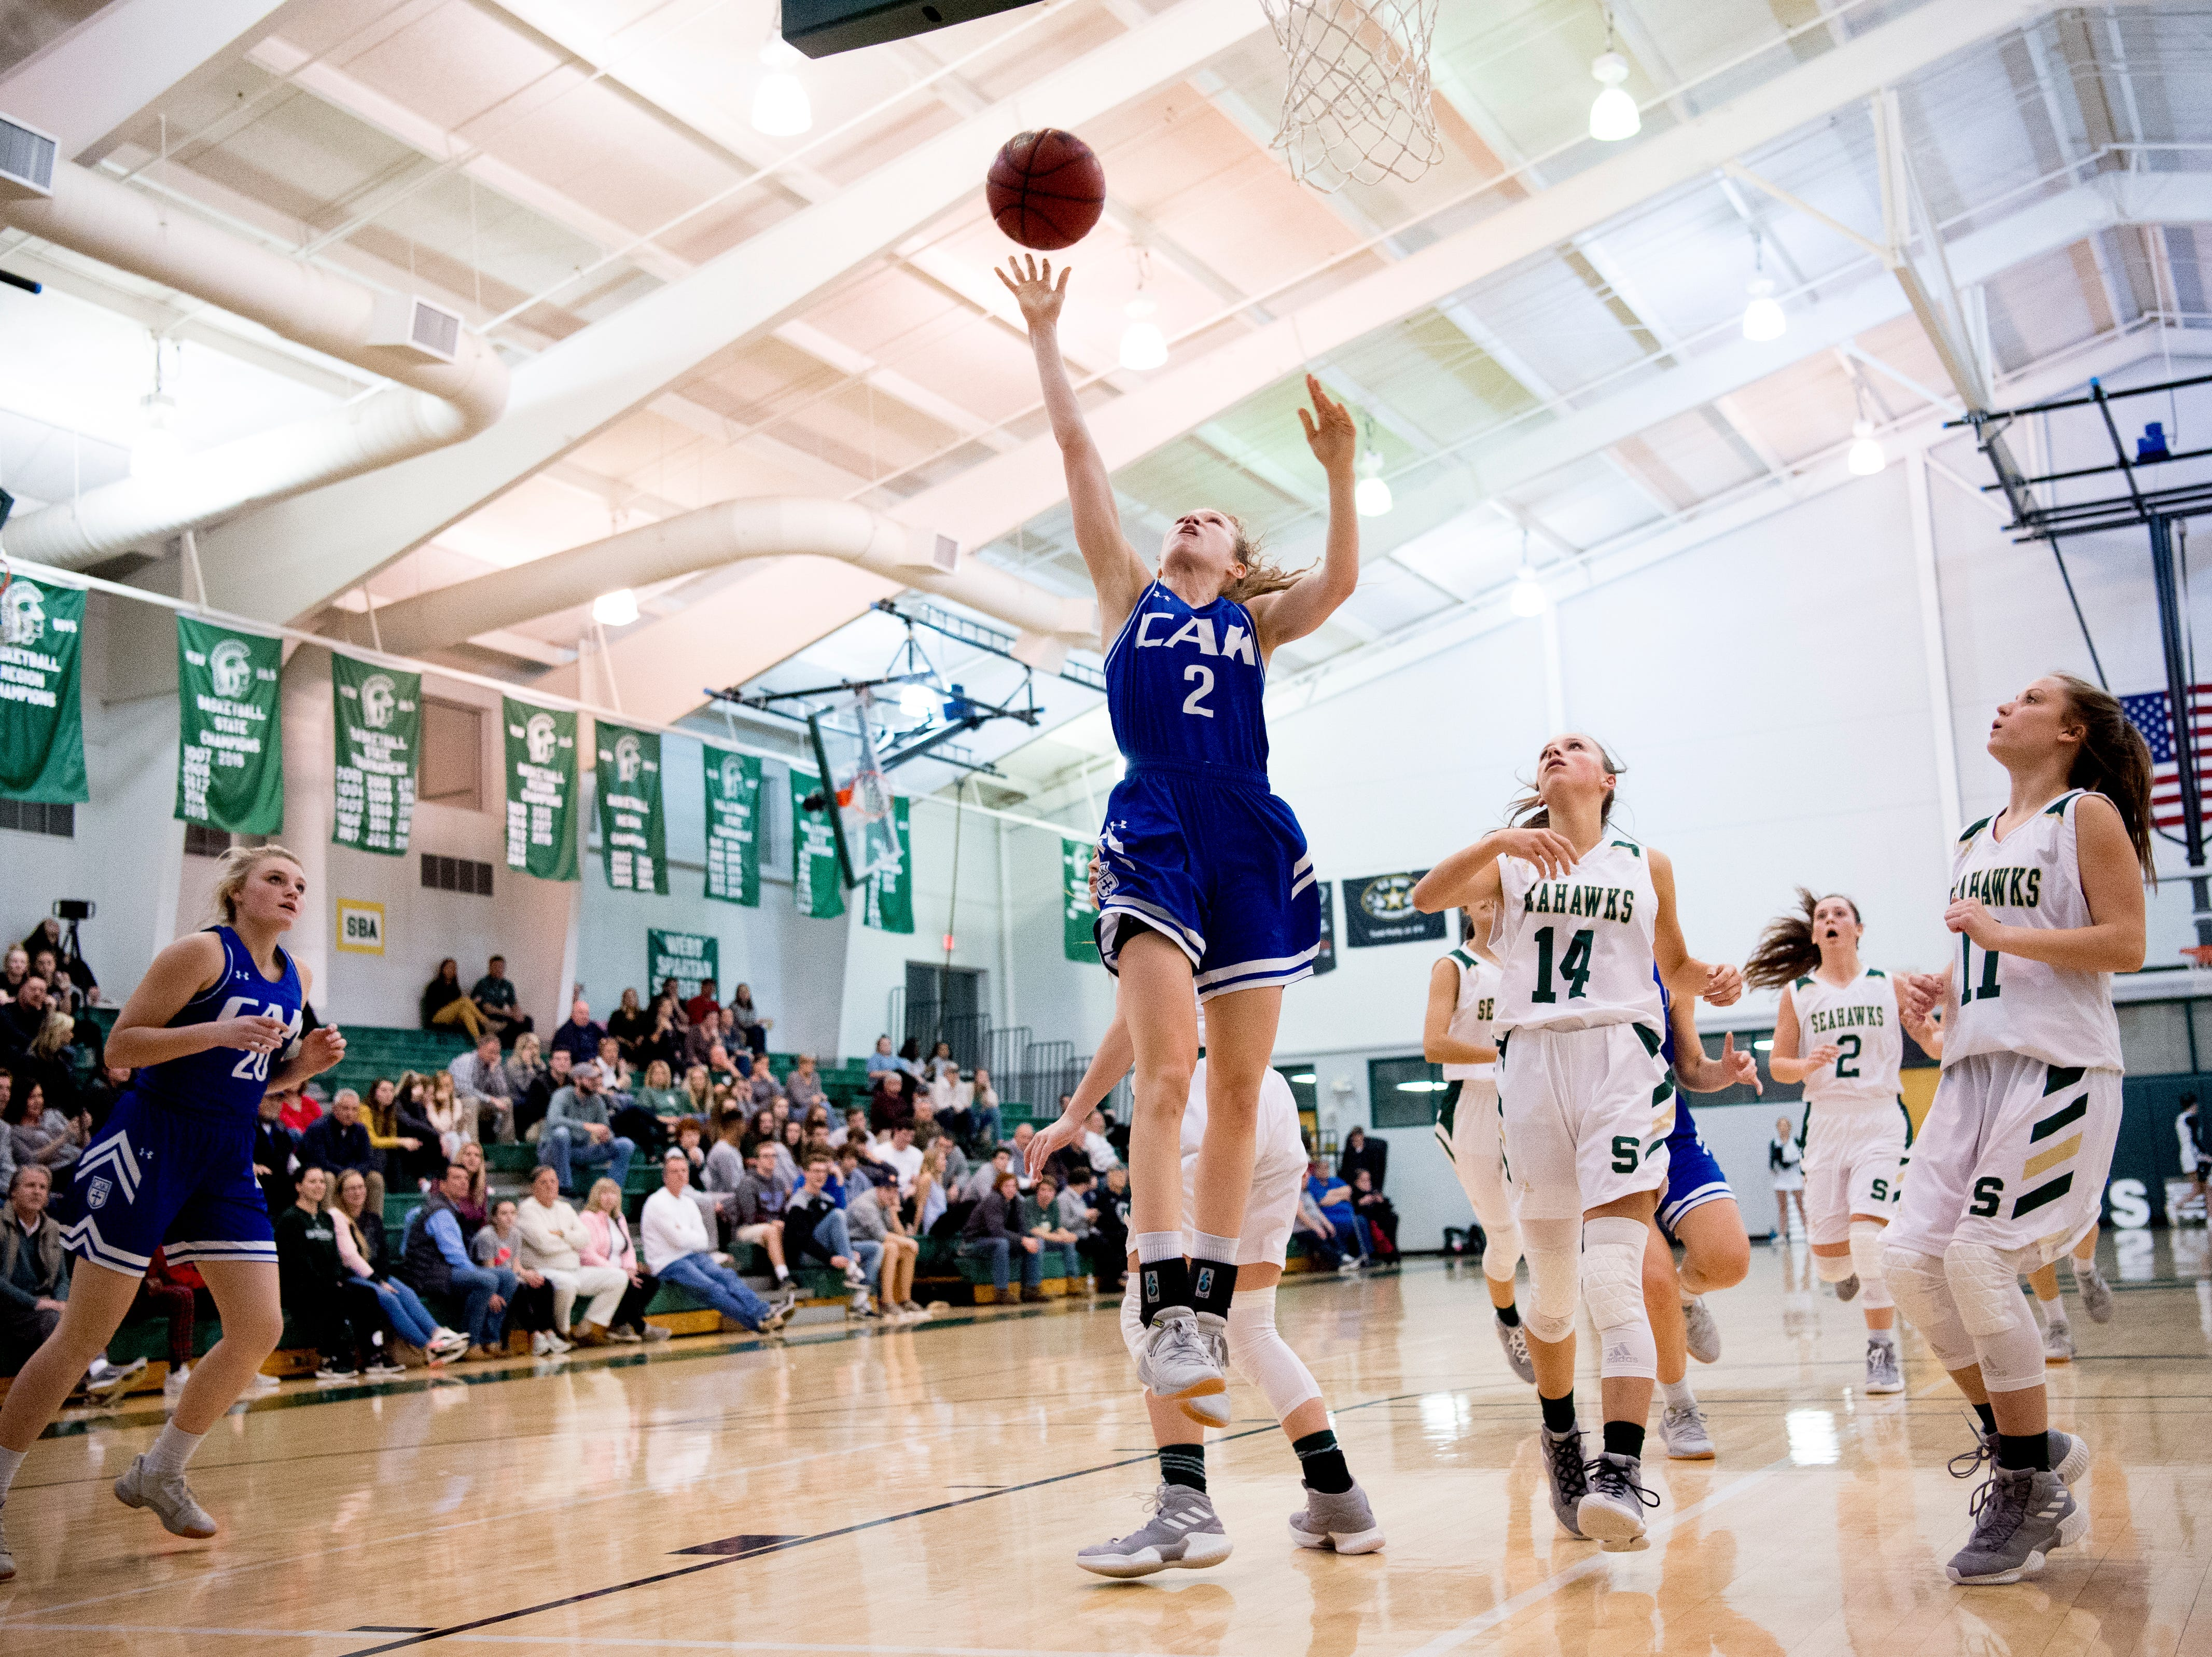 CAK's Claire Brock (2) shoots the ball for a point during a semifinal game between CAK and Silverdale at Webb School of Knoxville in Knoxville, Tennessee on Friday, February 15, 2019.